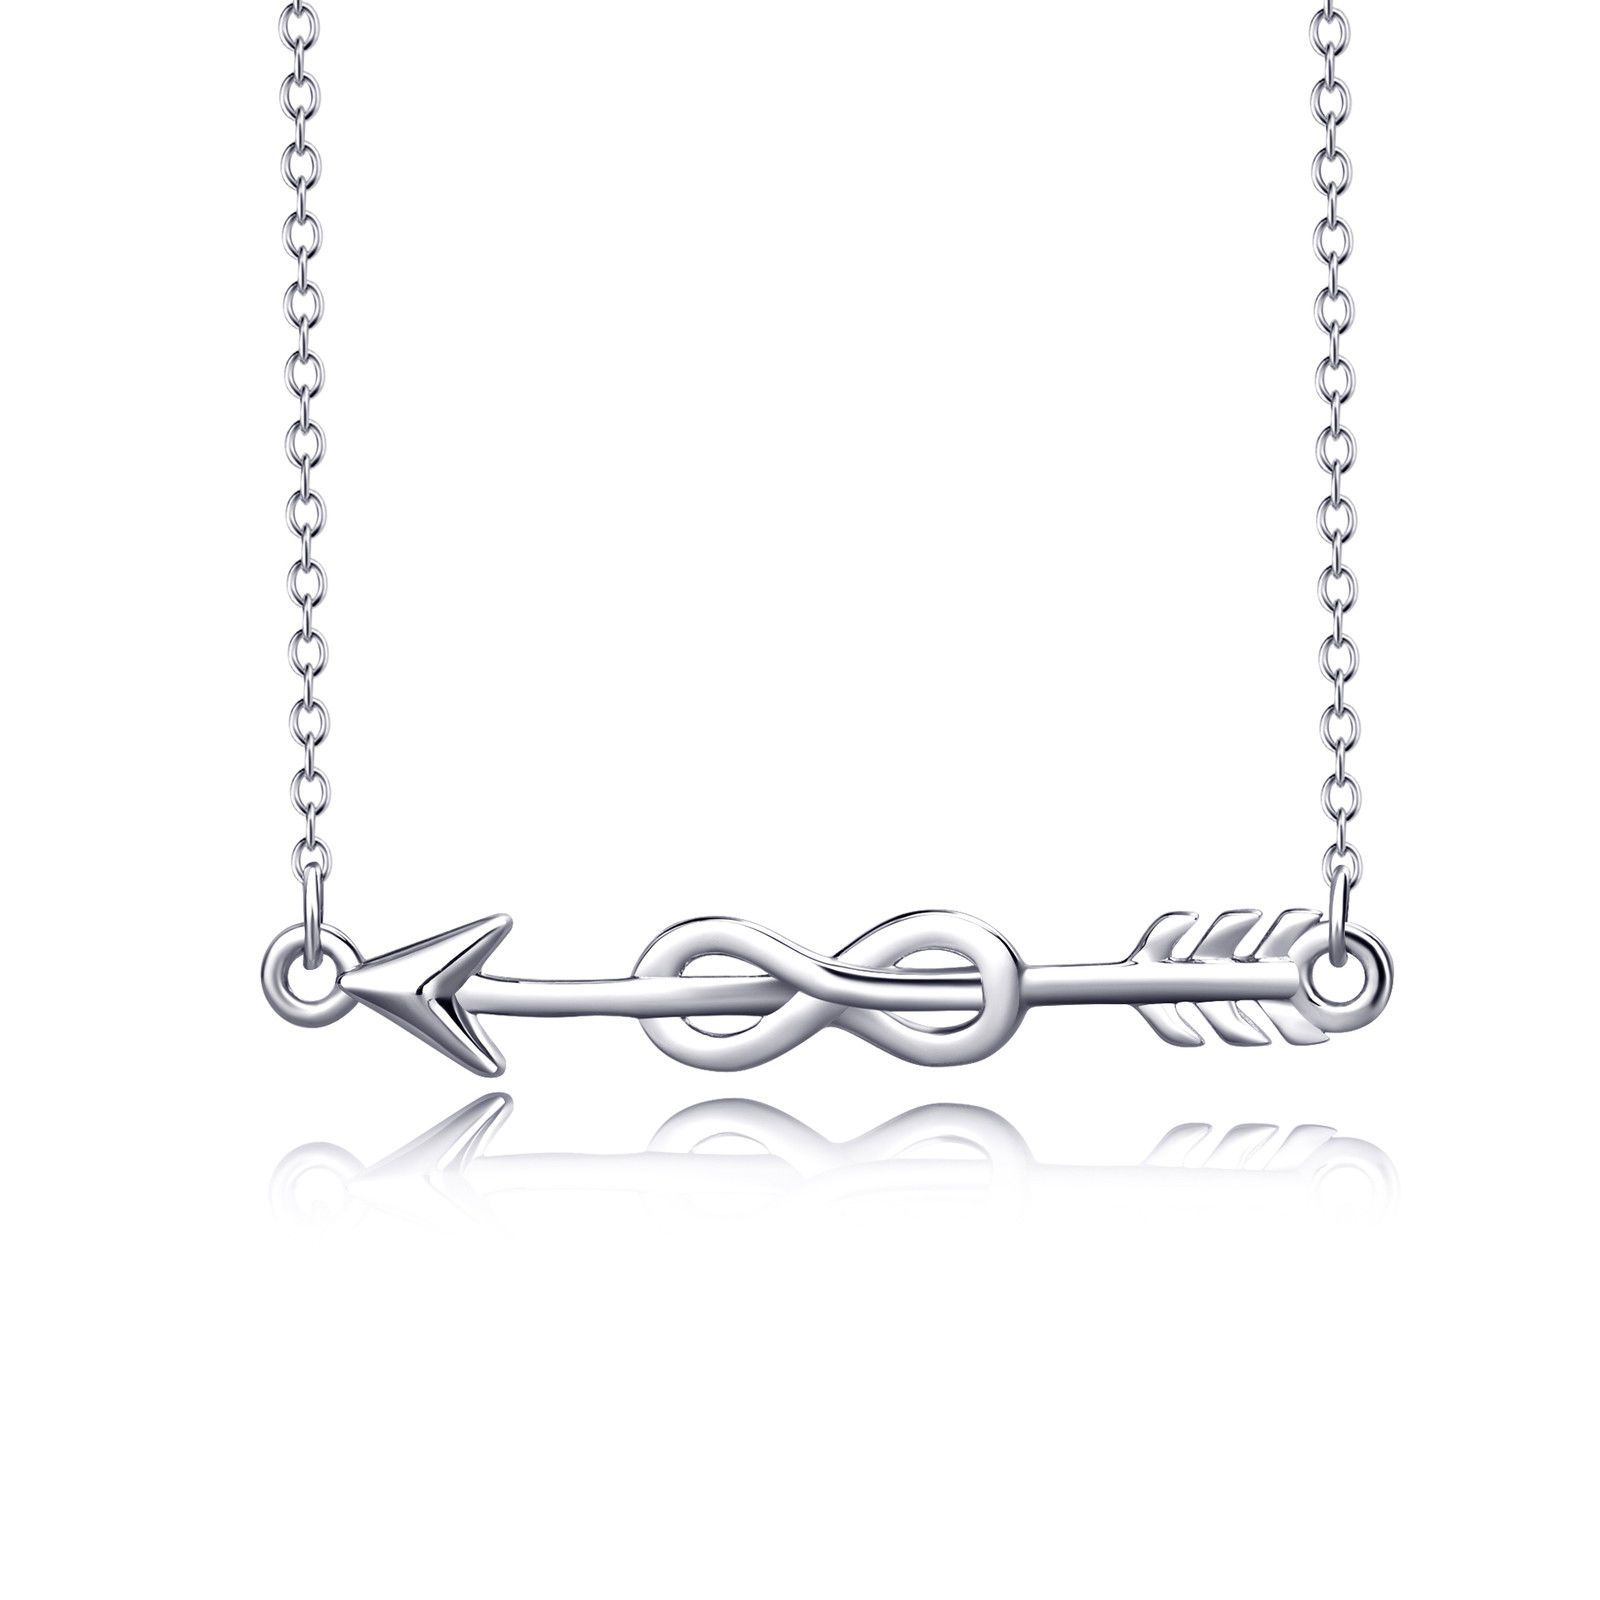 Cupid Arrow Infinity Love Knot Pendant Sterling Silver Necklace Regarding 2019 Arrow Of Cupid Dangle Charm Necklaces (View 24 of 25)